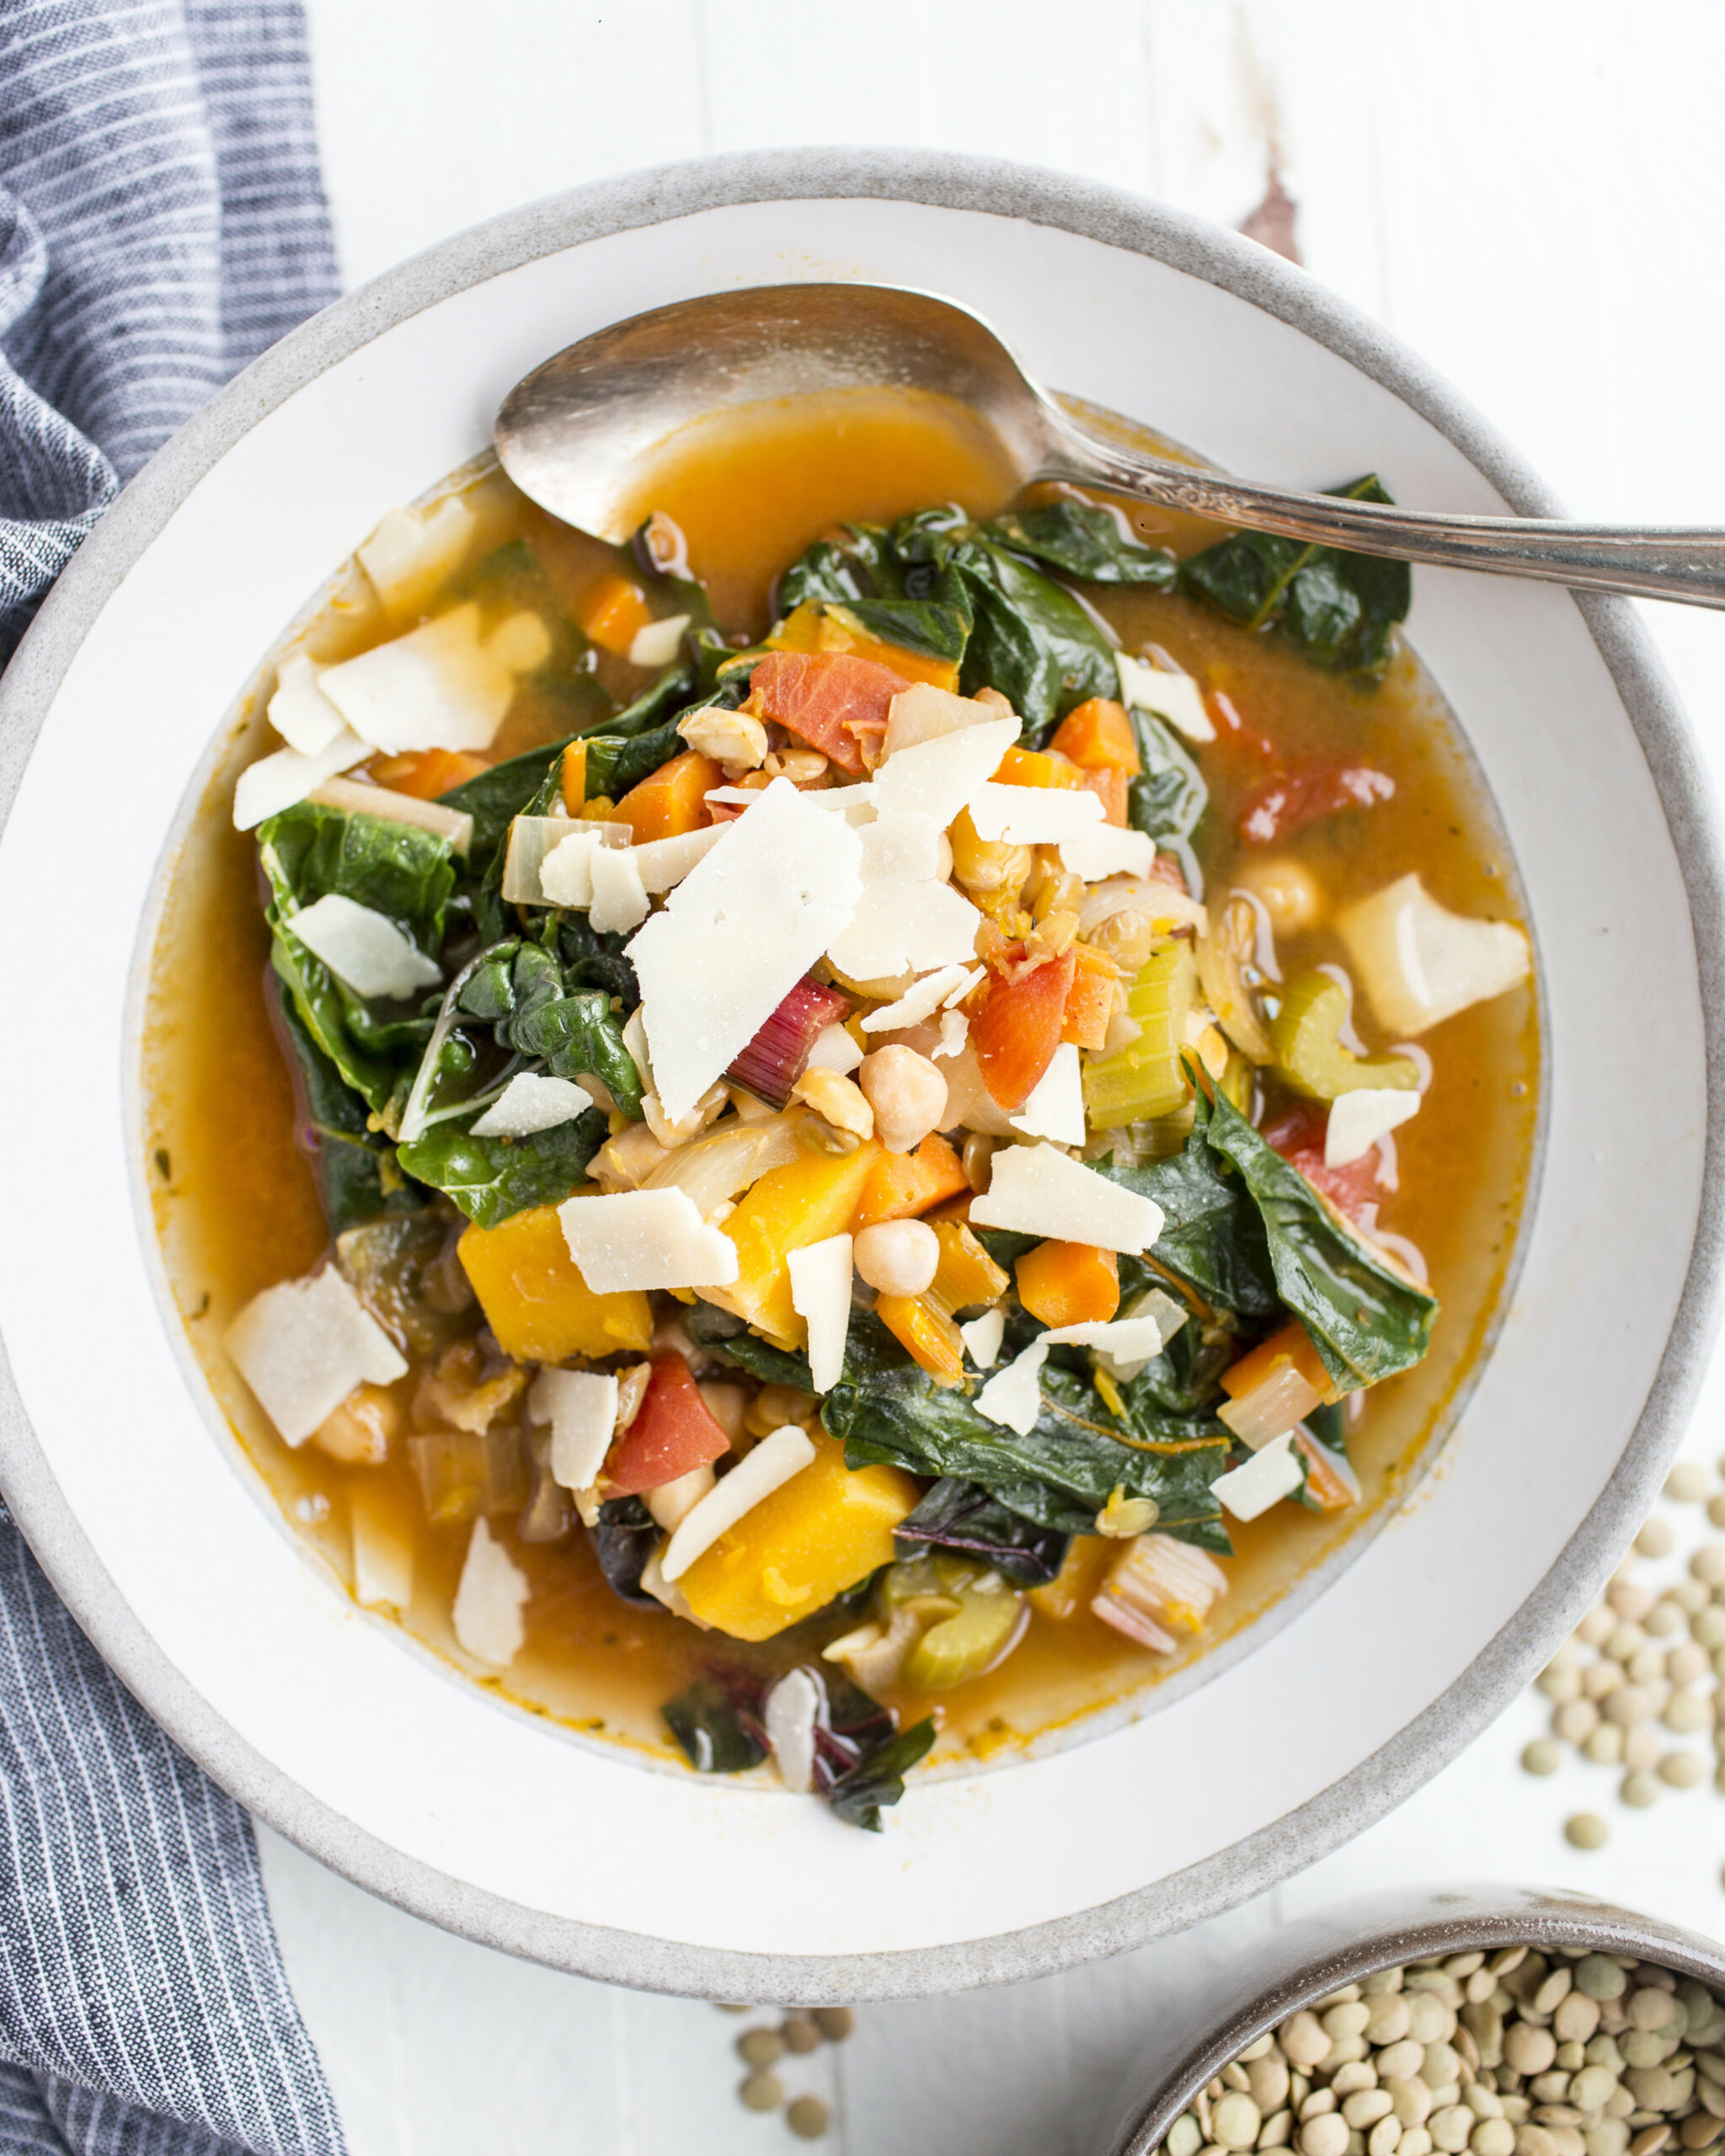 Winter Vegetable Soup with Swiss Chard, Lentils, and Chickpeas - recipes vegetarian winter